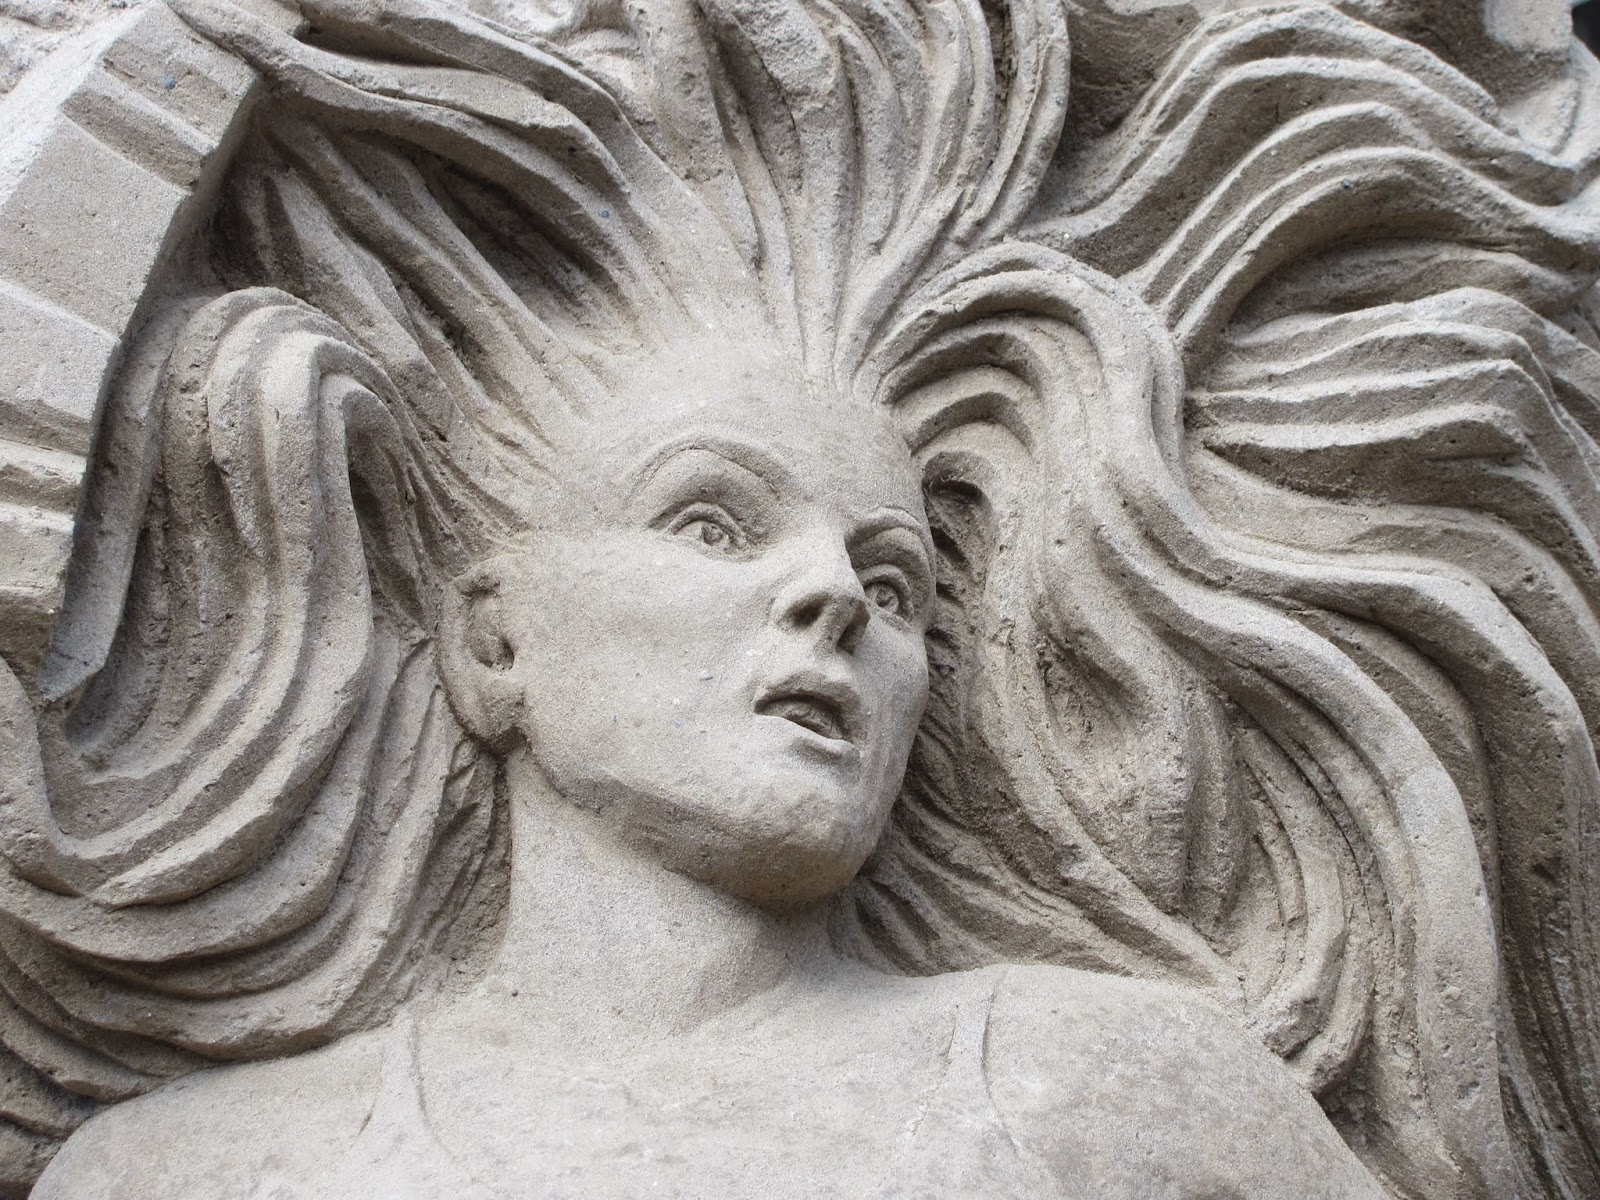 A detailed face and hair at Dublin Castle Sand Sculptures 2014